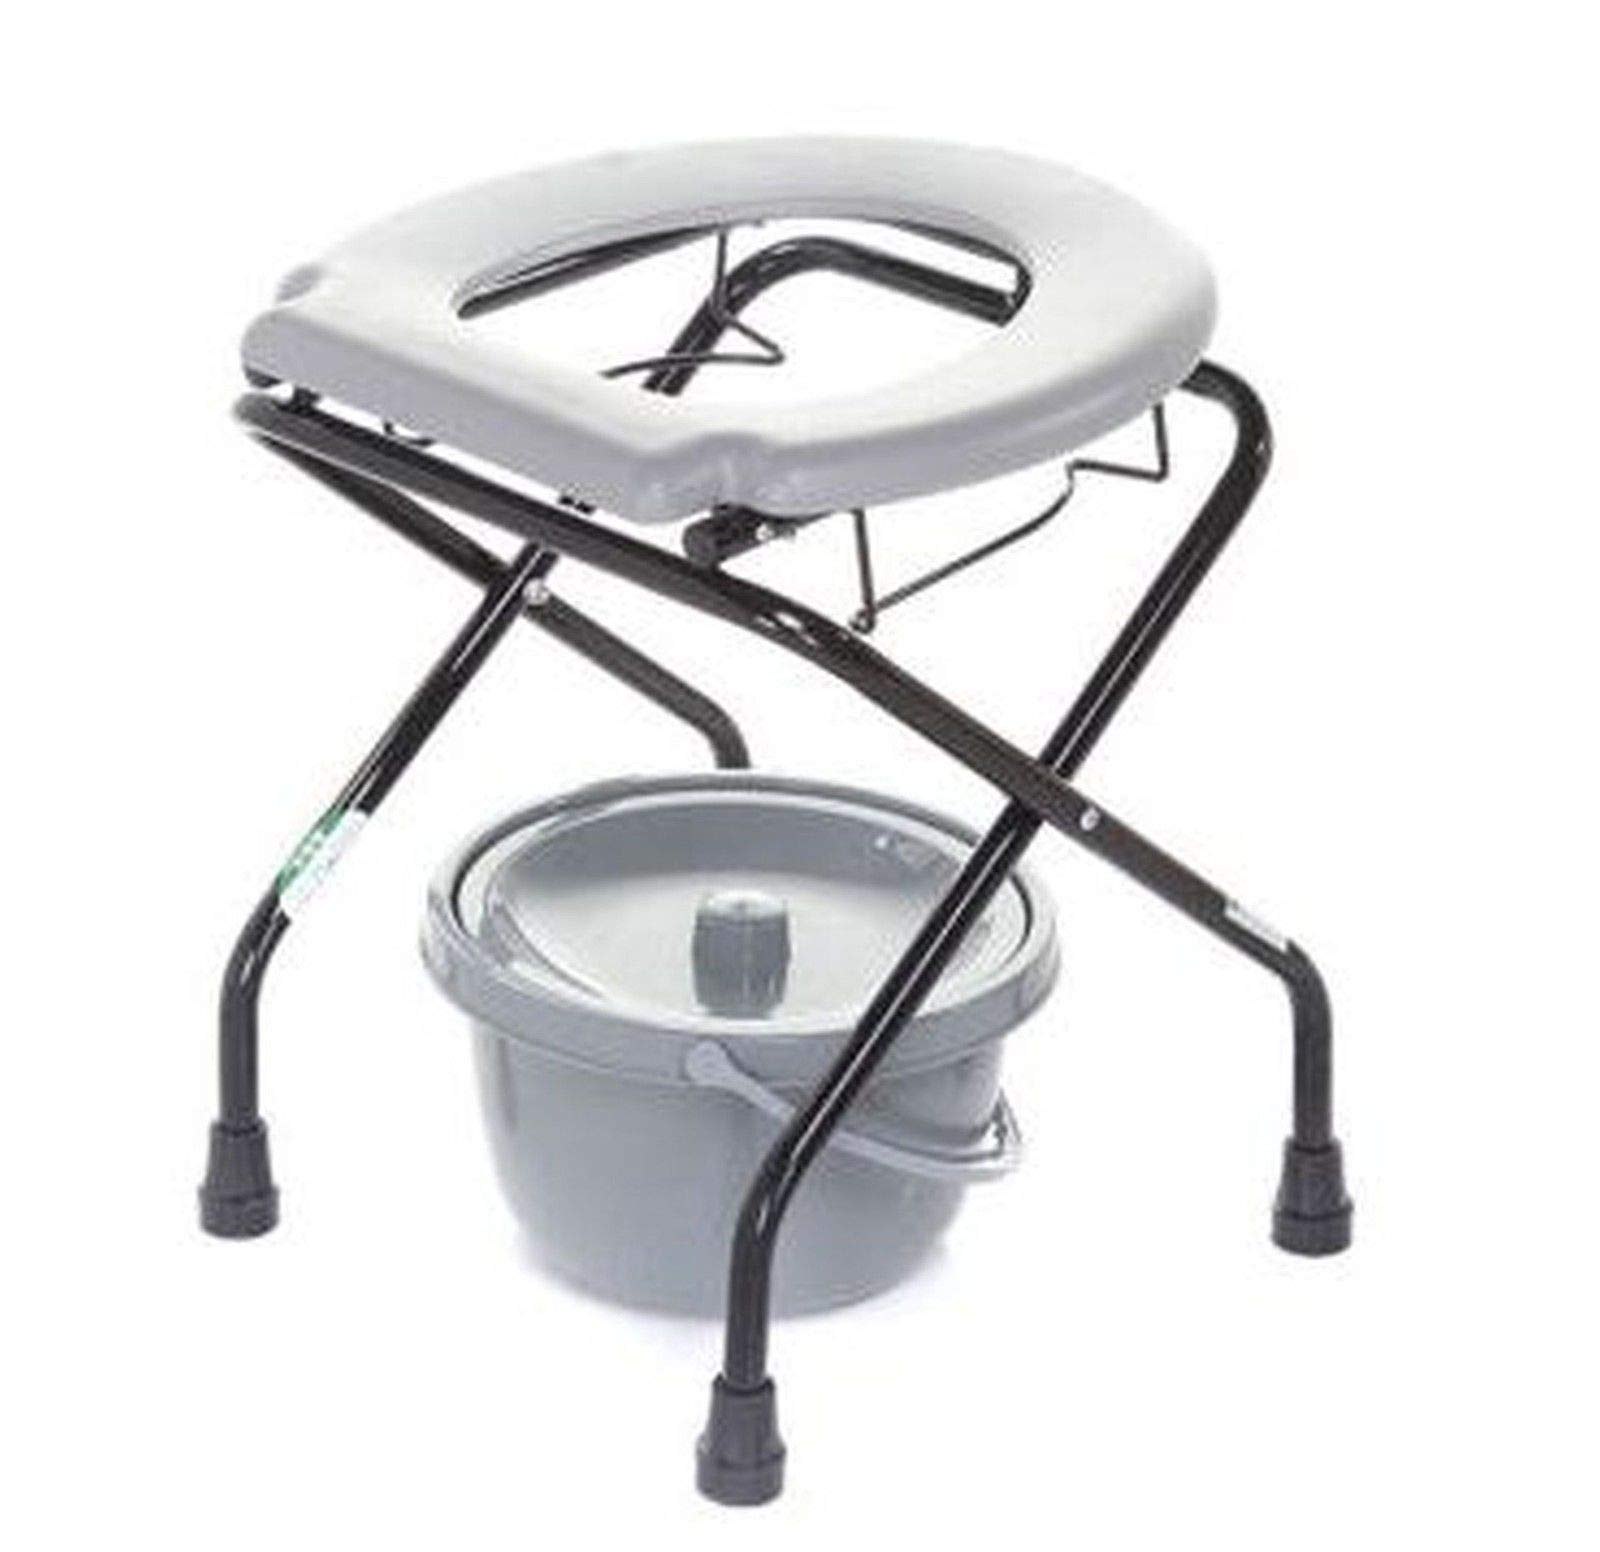 Portable Folding Toilet Commode with Bucket. Steel Frame. Bedside or Camping by 702 store